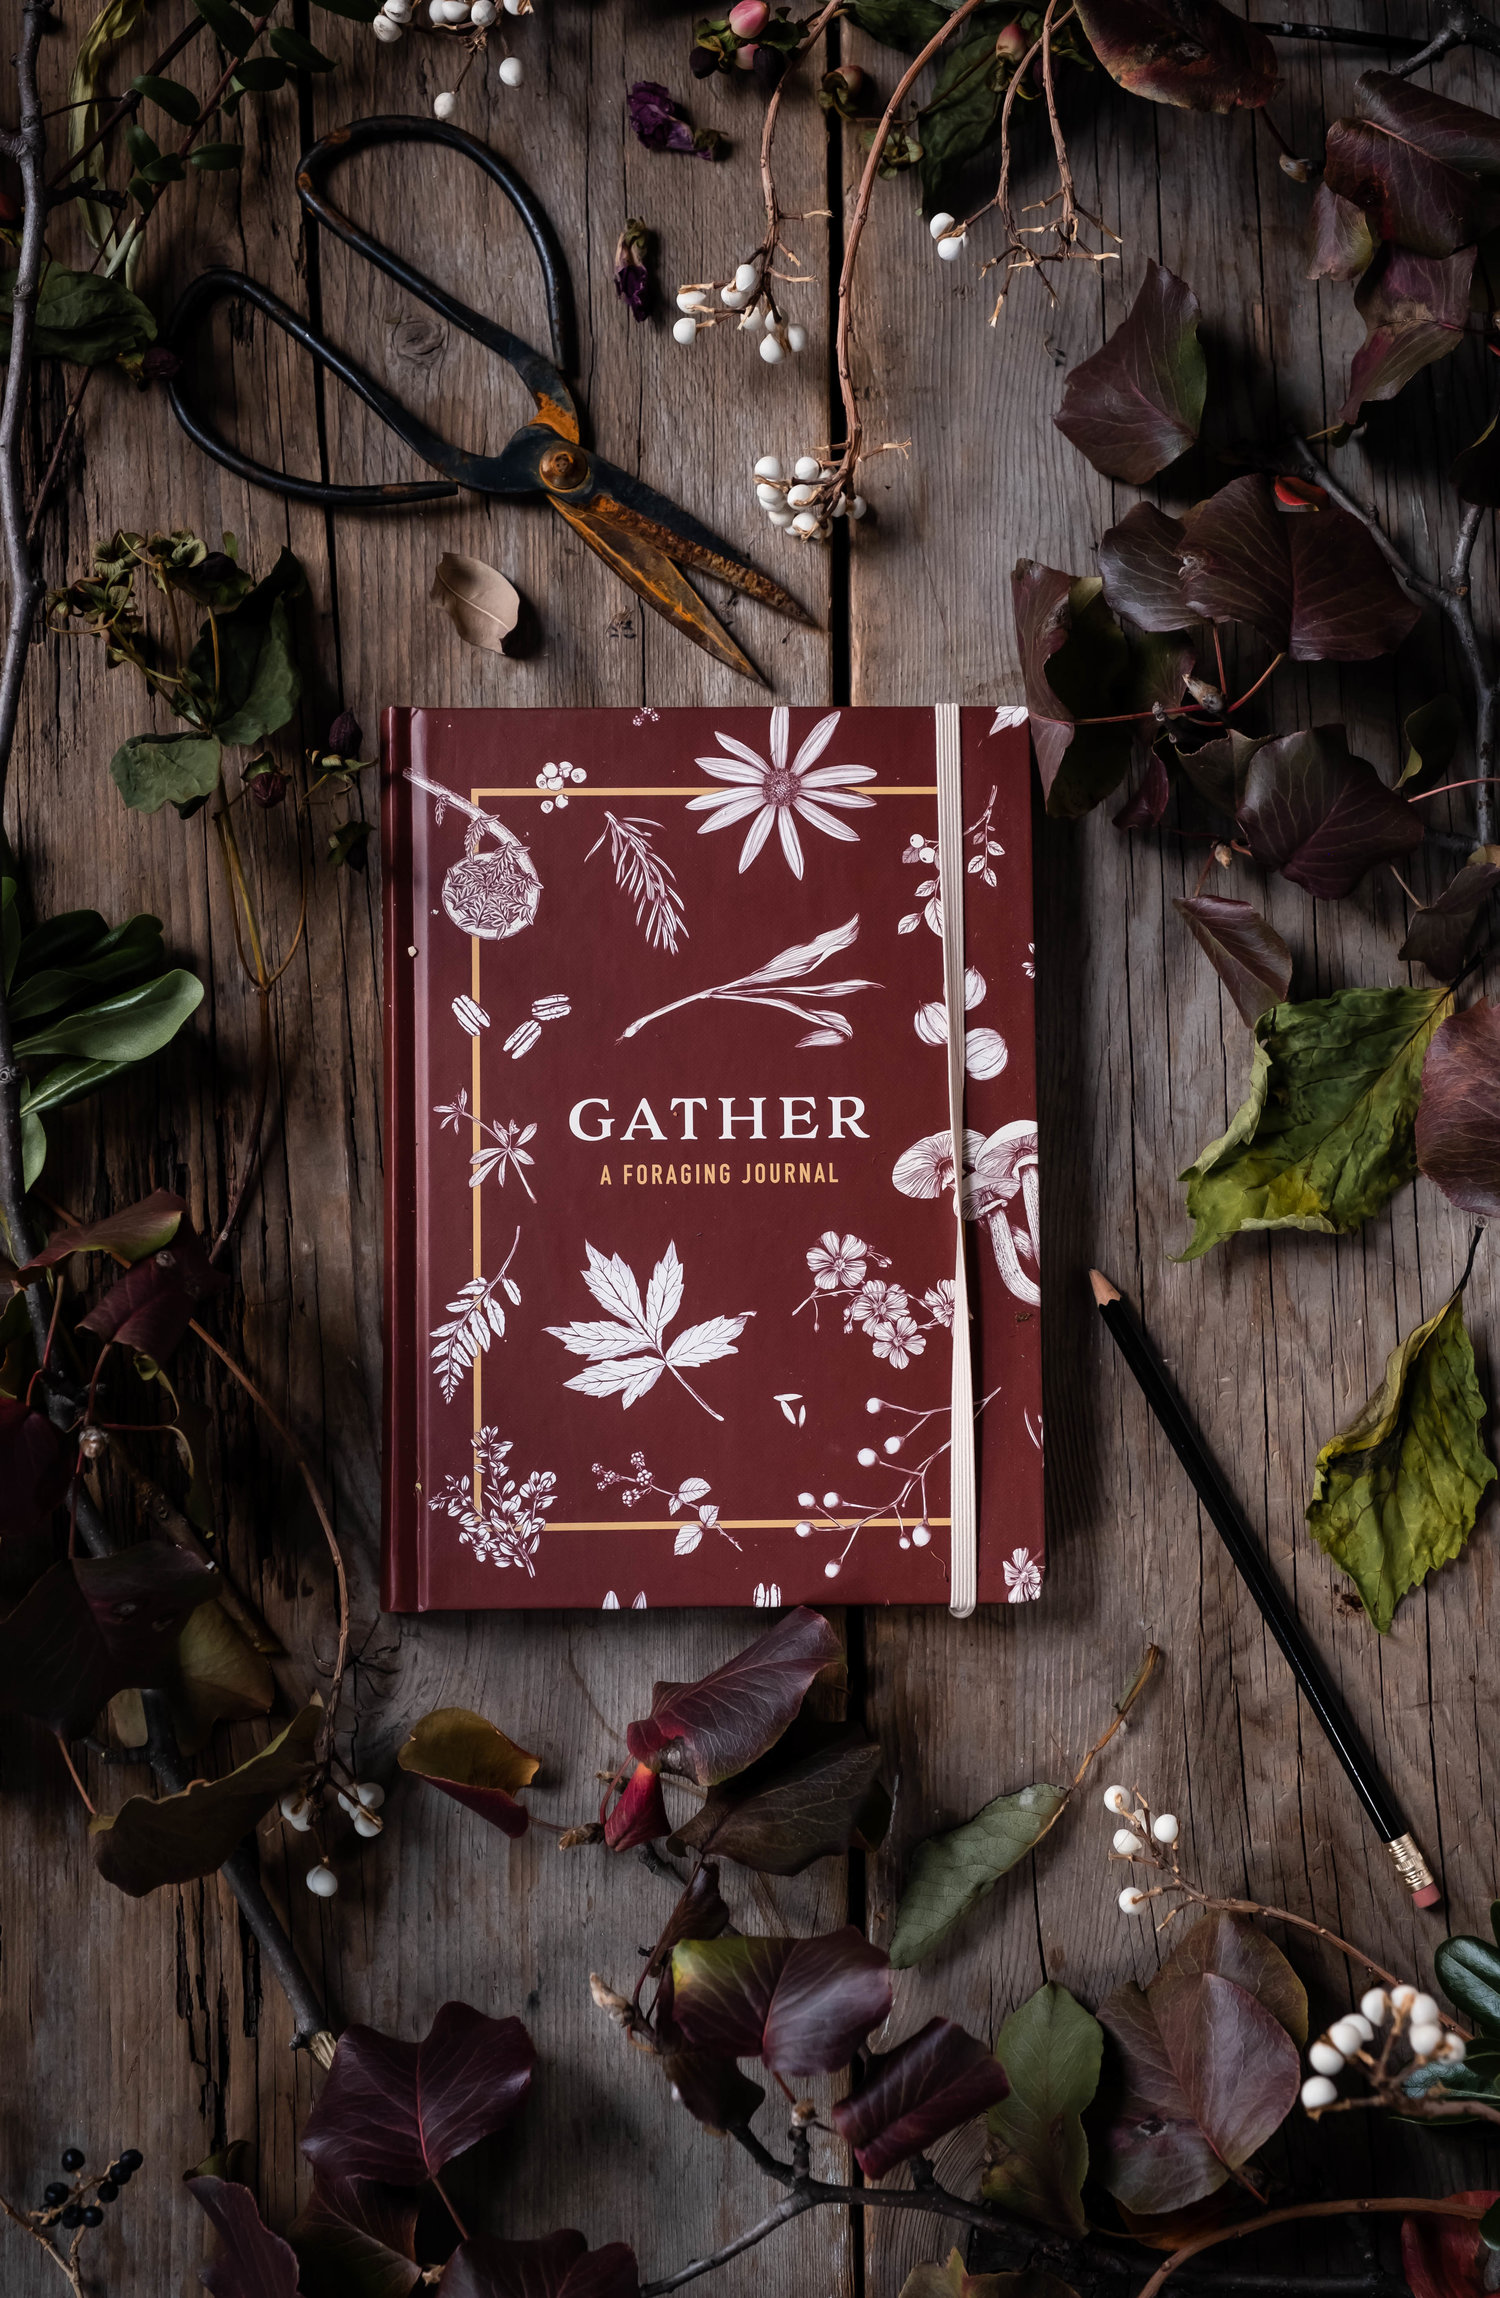 ROSE+&+IVY+Journal+Holiday+Gifting+Gather-+A+Foraging+Journal.jpeg